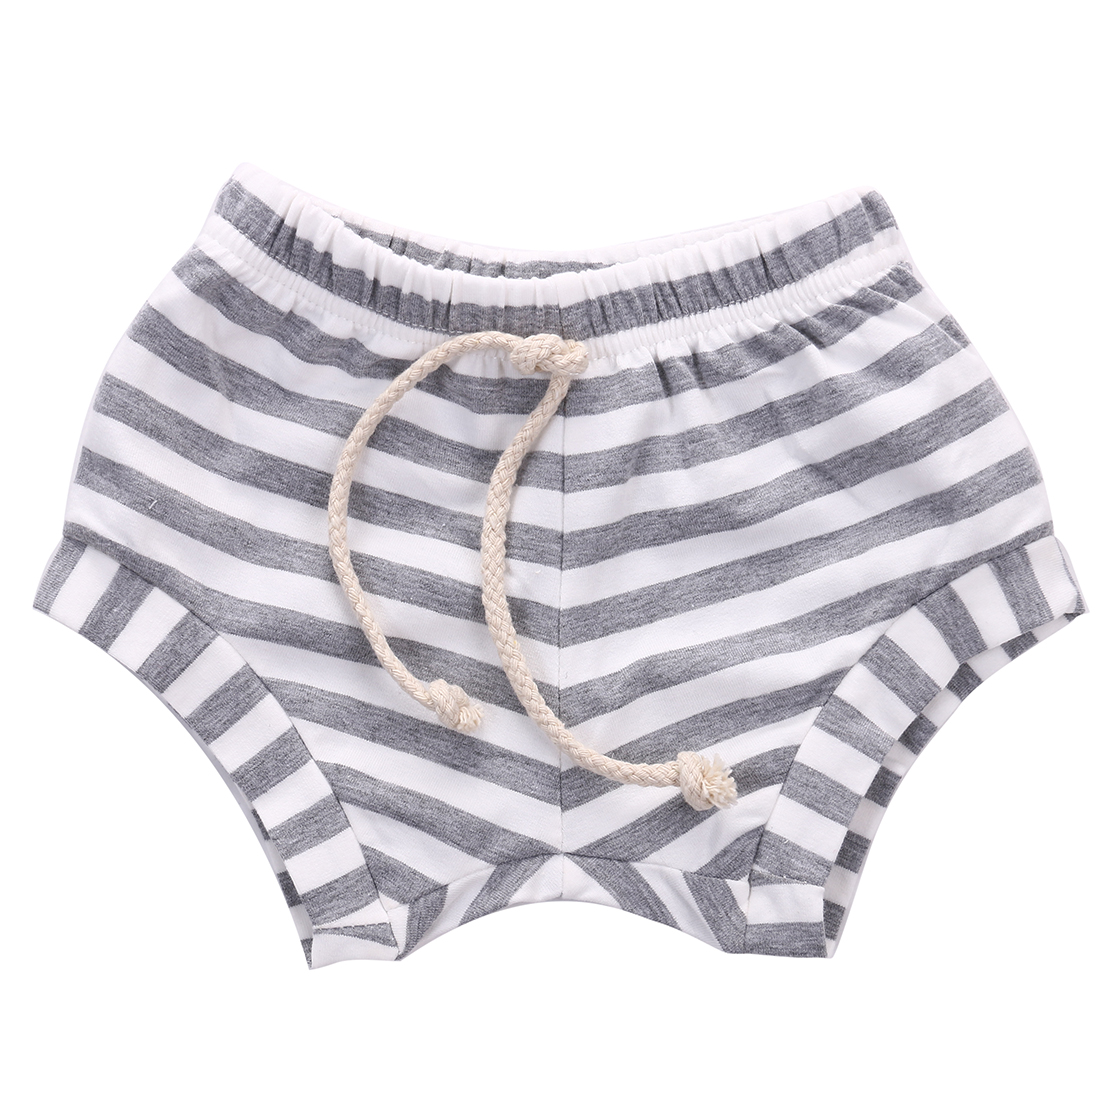 2017 Summer Hot Sale Casual Toddler Infant Baby Girls High Quality Cotton Bottoms Striped Shorts